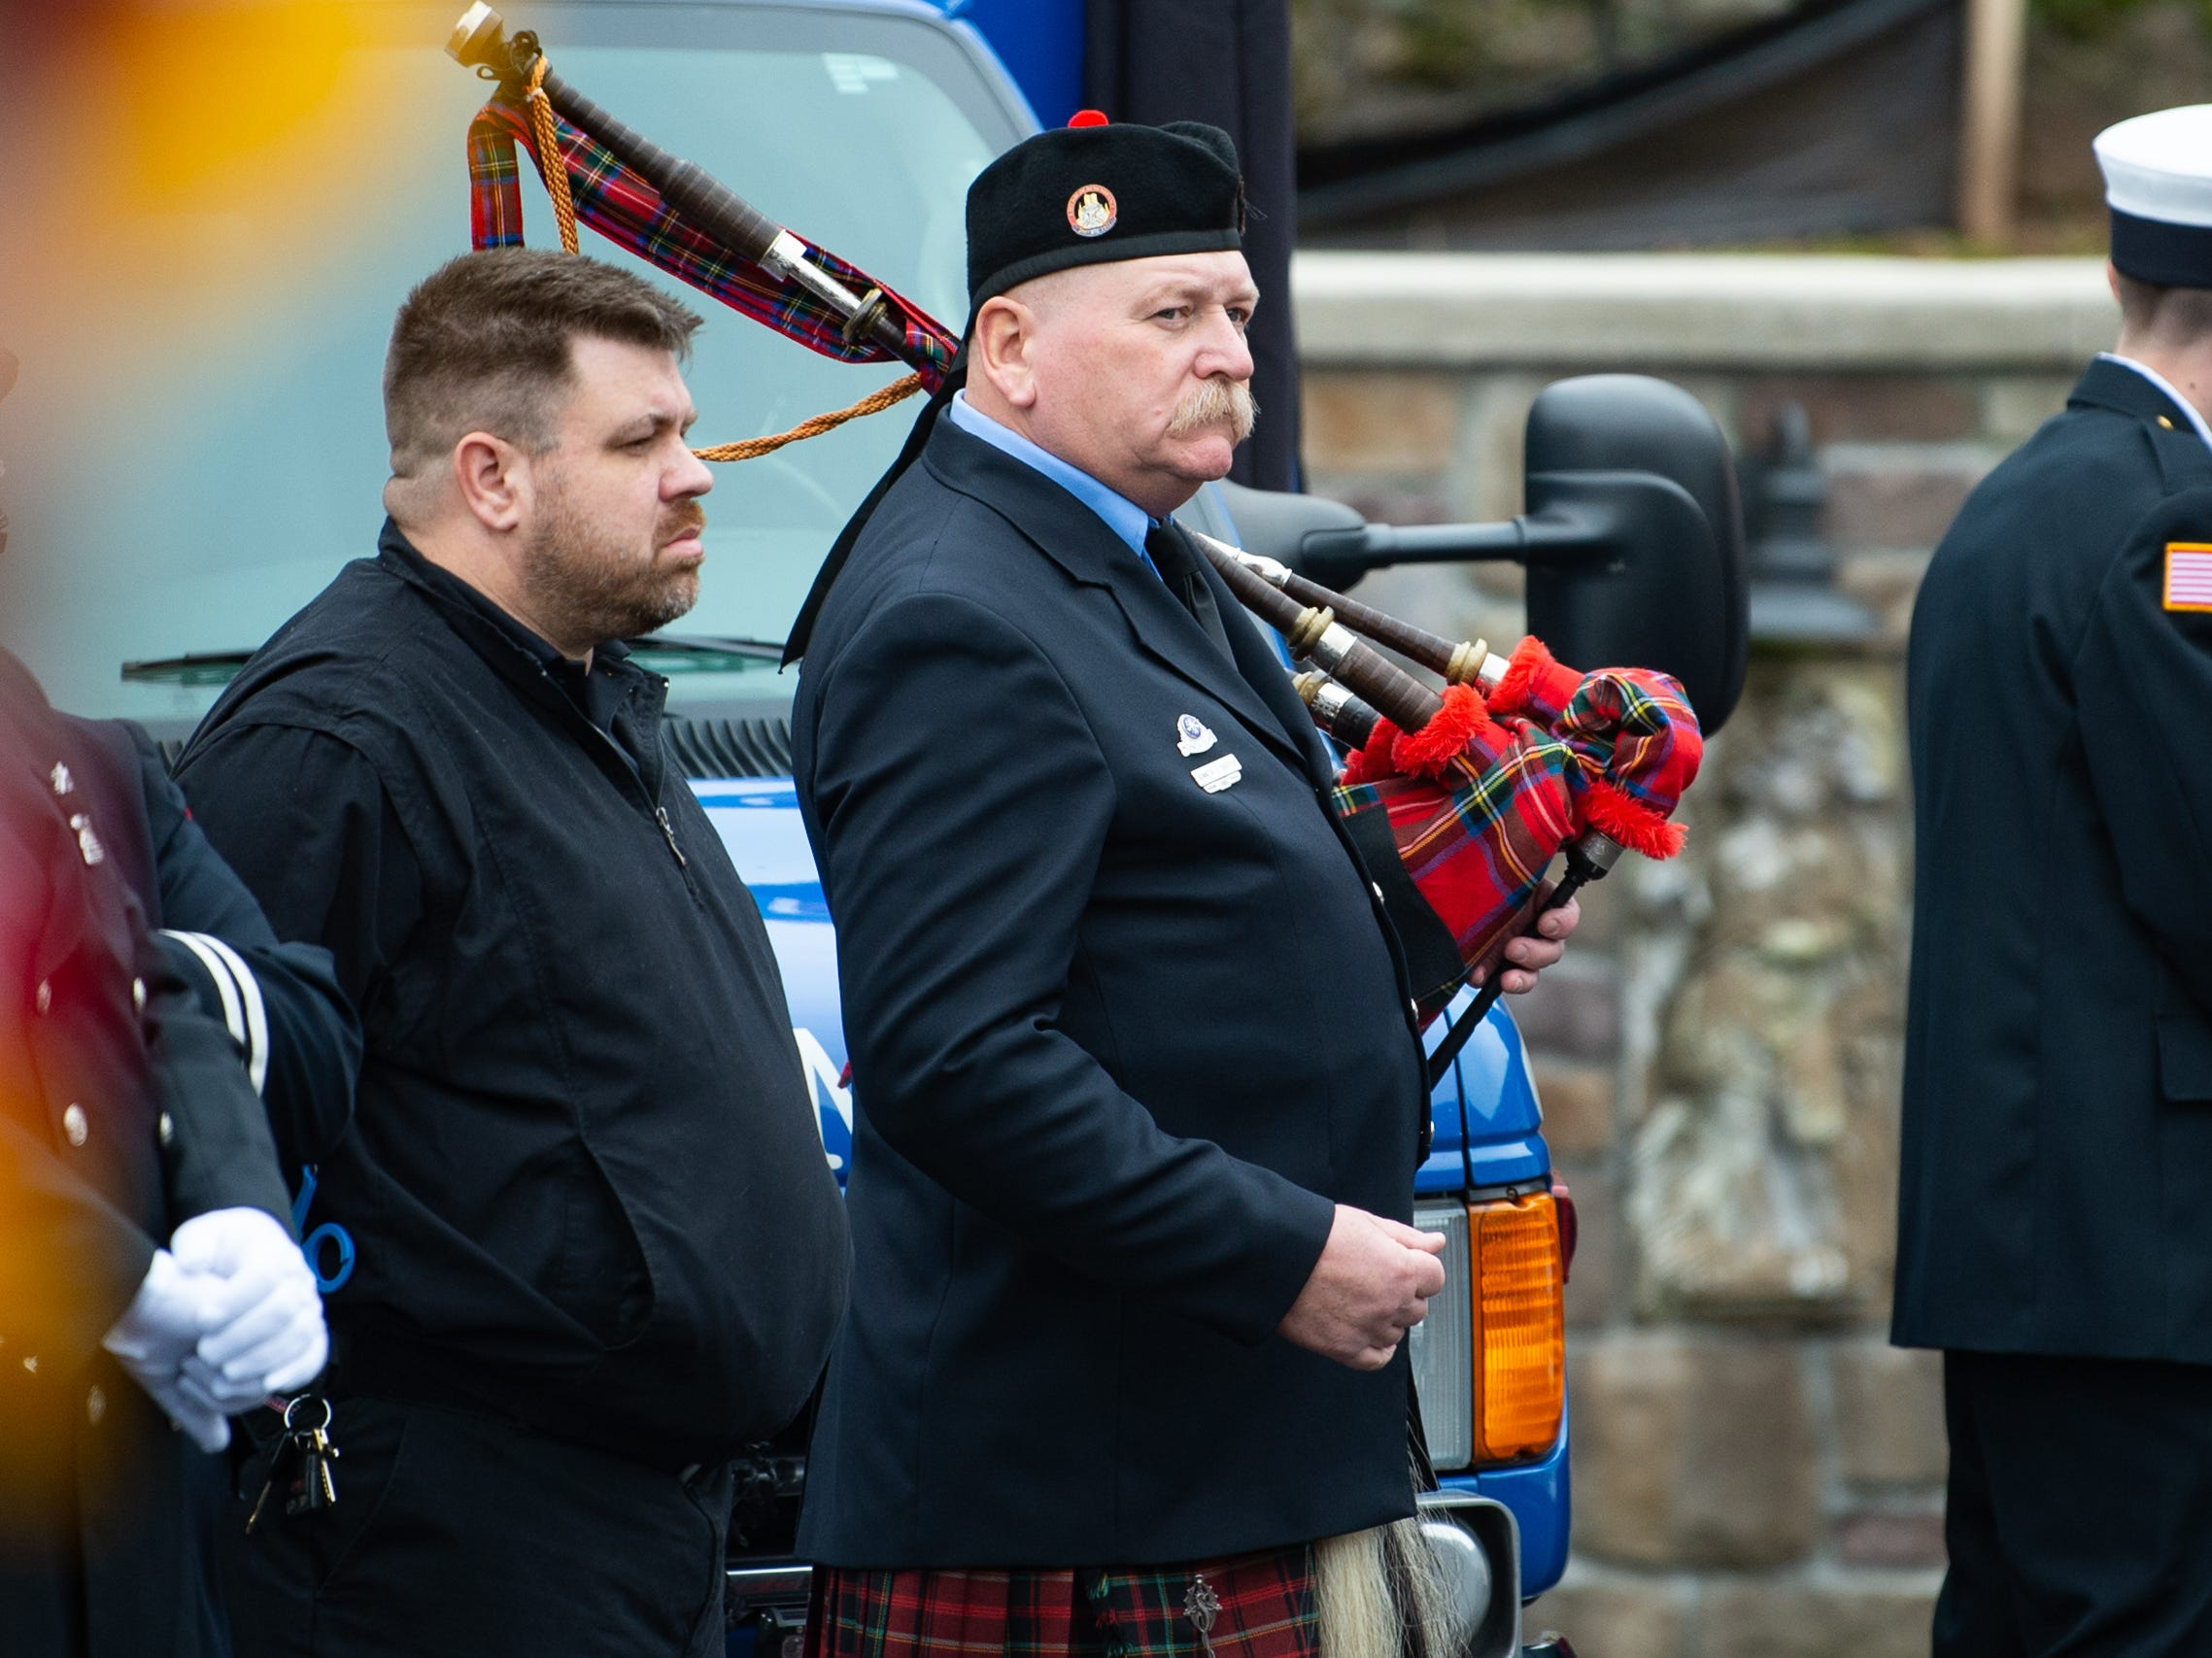 The bag pipes were played as Kohler's coffin was taken to the ambulance, January 4, 2019.